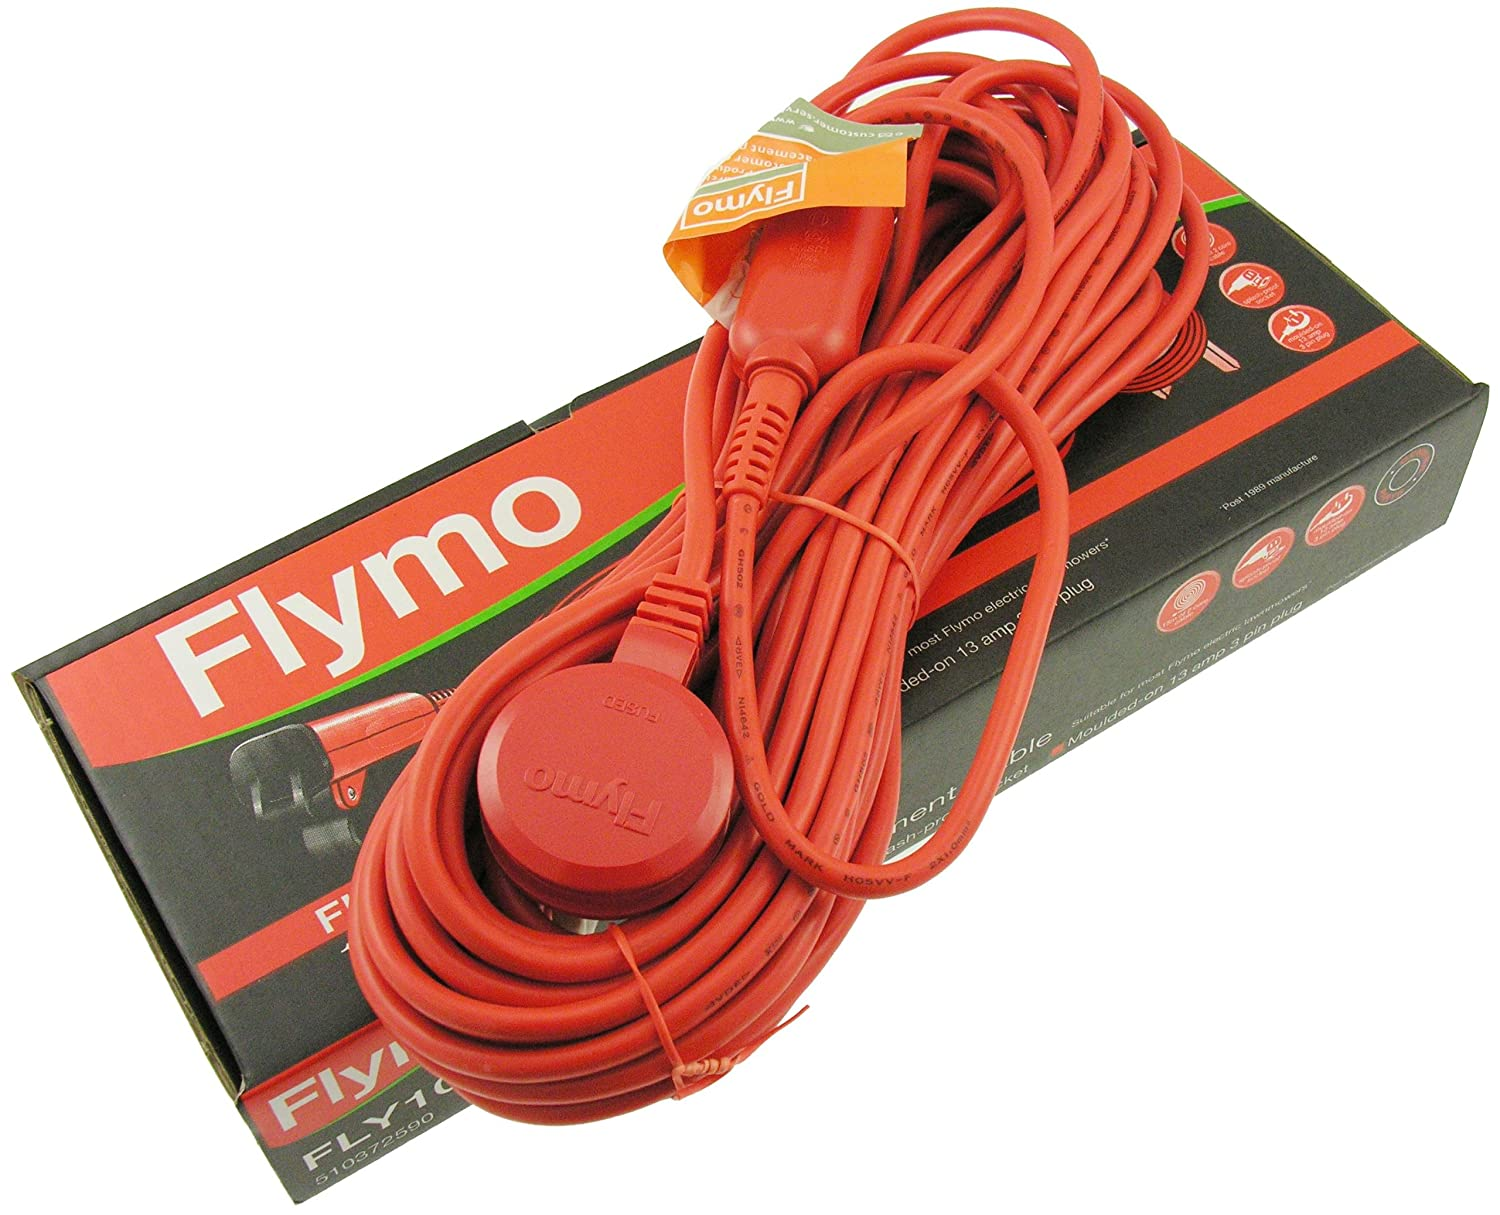 Flymo FLY102 15 m Replacement Cable to Suit Some Flymo Electric Lawnmowers - Orange Husqvarna FL5103725-90/8